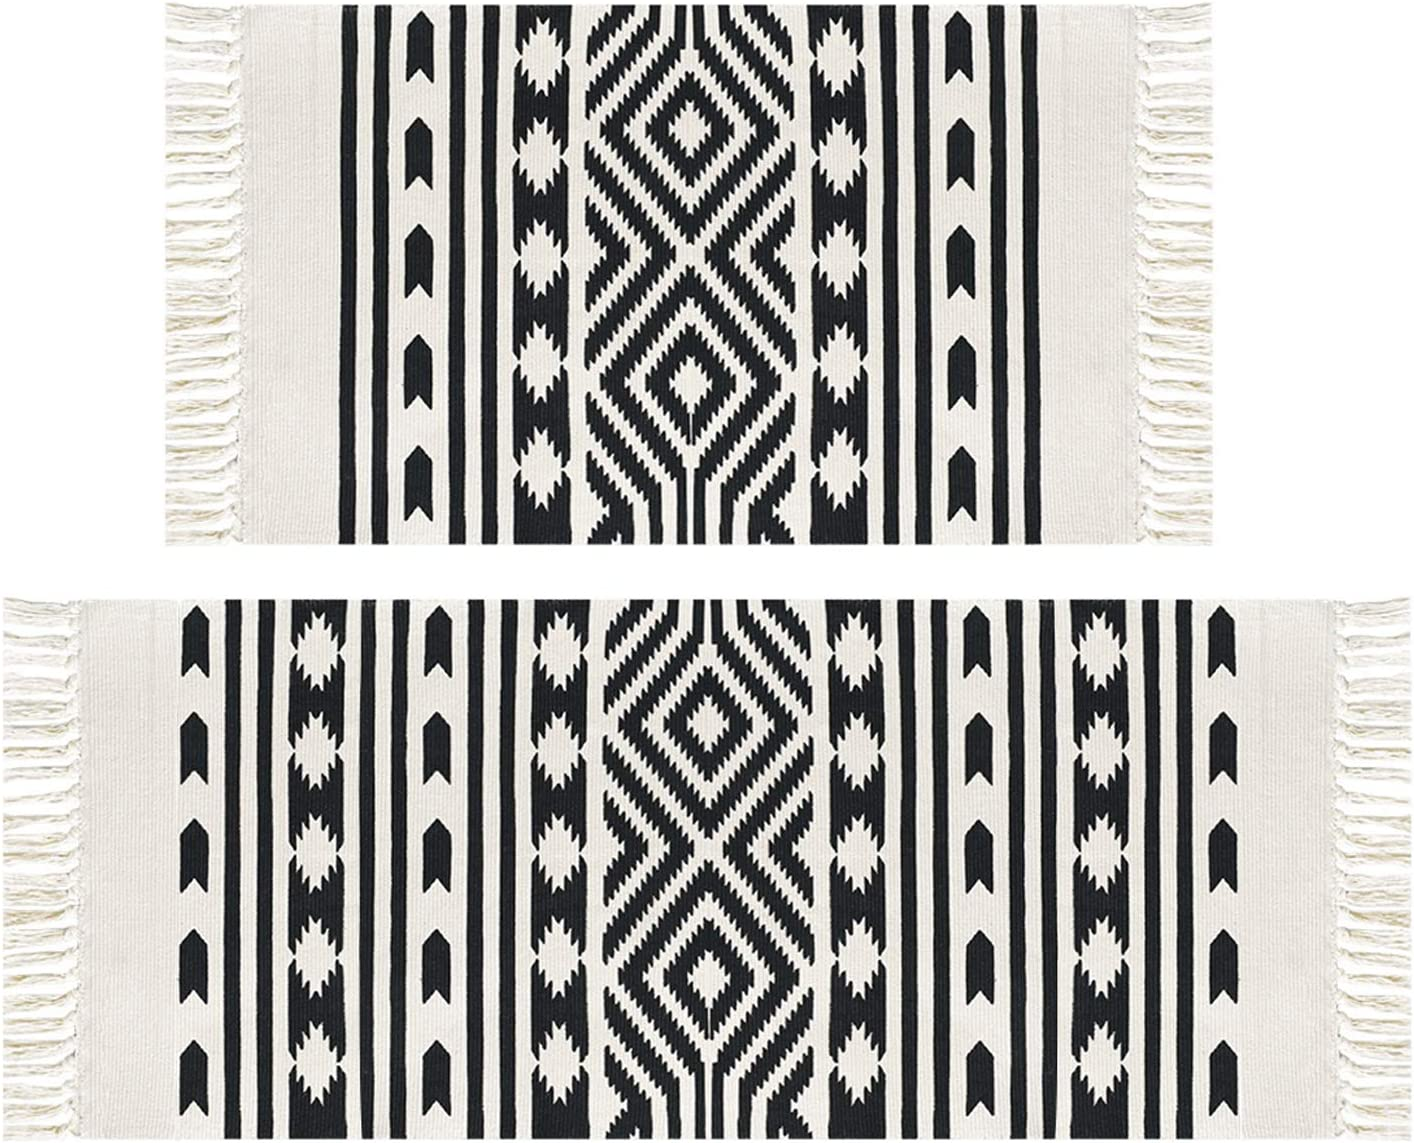 Pauwer Cream And Black Geometric Cotton Area Rug Set 2 Piece 2 X4 2 2 X3 Machine Washable Printed Cotton Rugs With Tassel Hand Woven Cotton Rug Runner For Kitchen Living Room Bedroom Furniture Decor Amazon Com